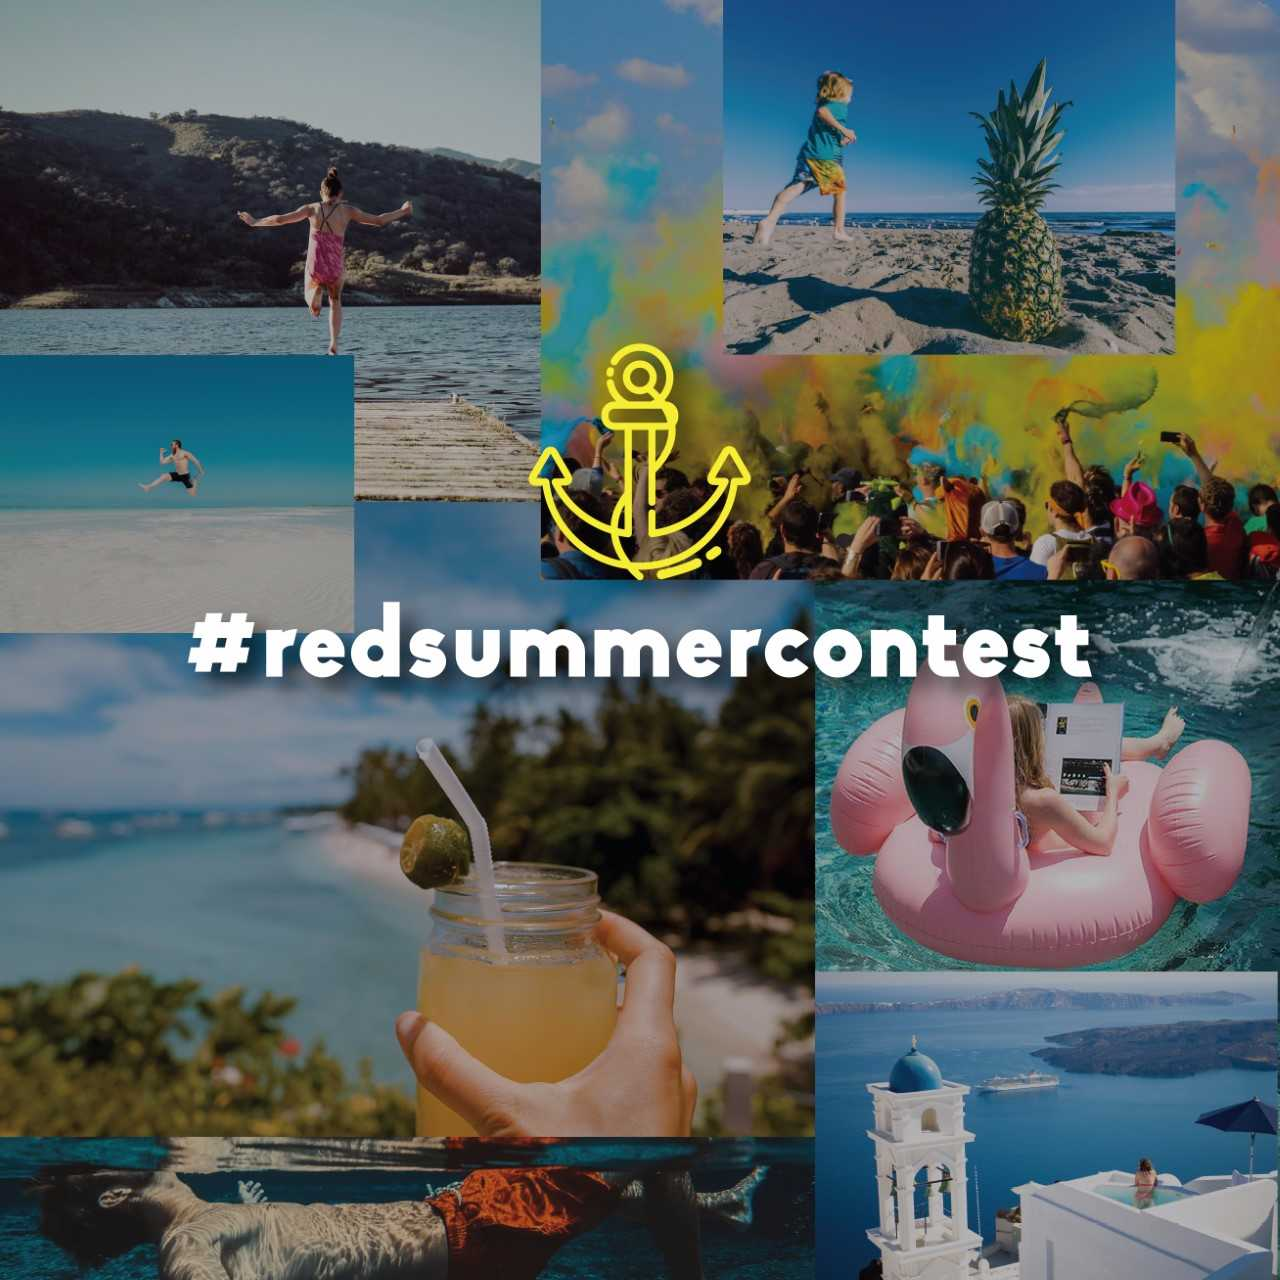 redsummercontest